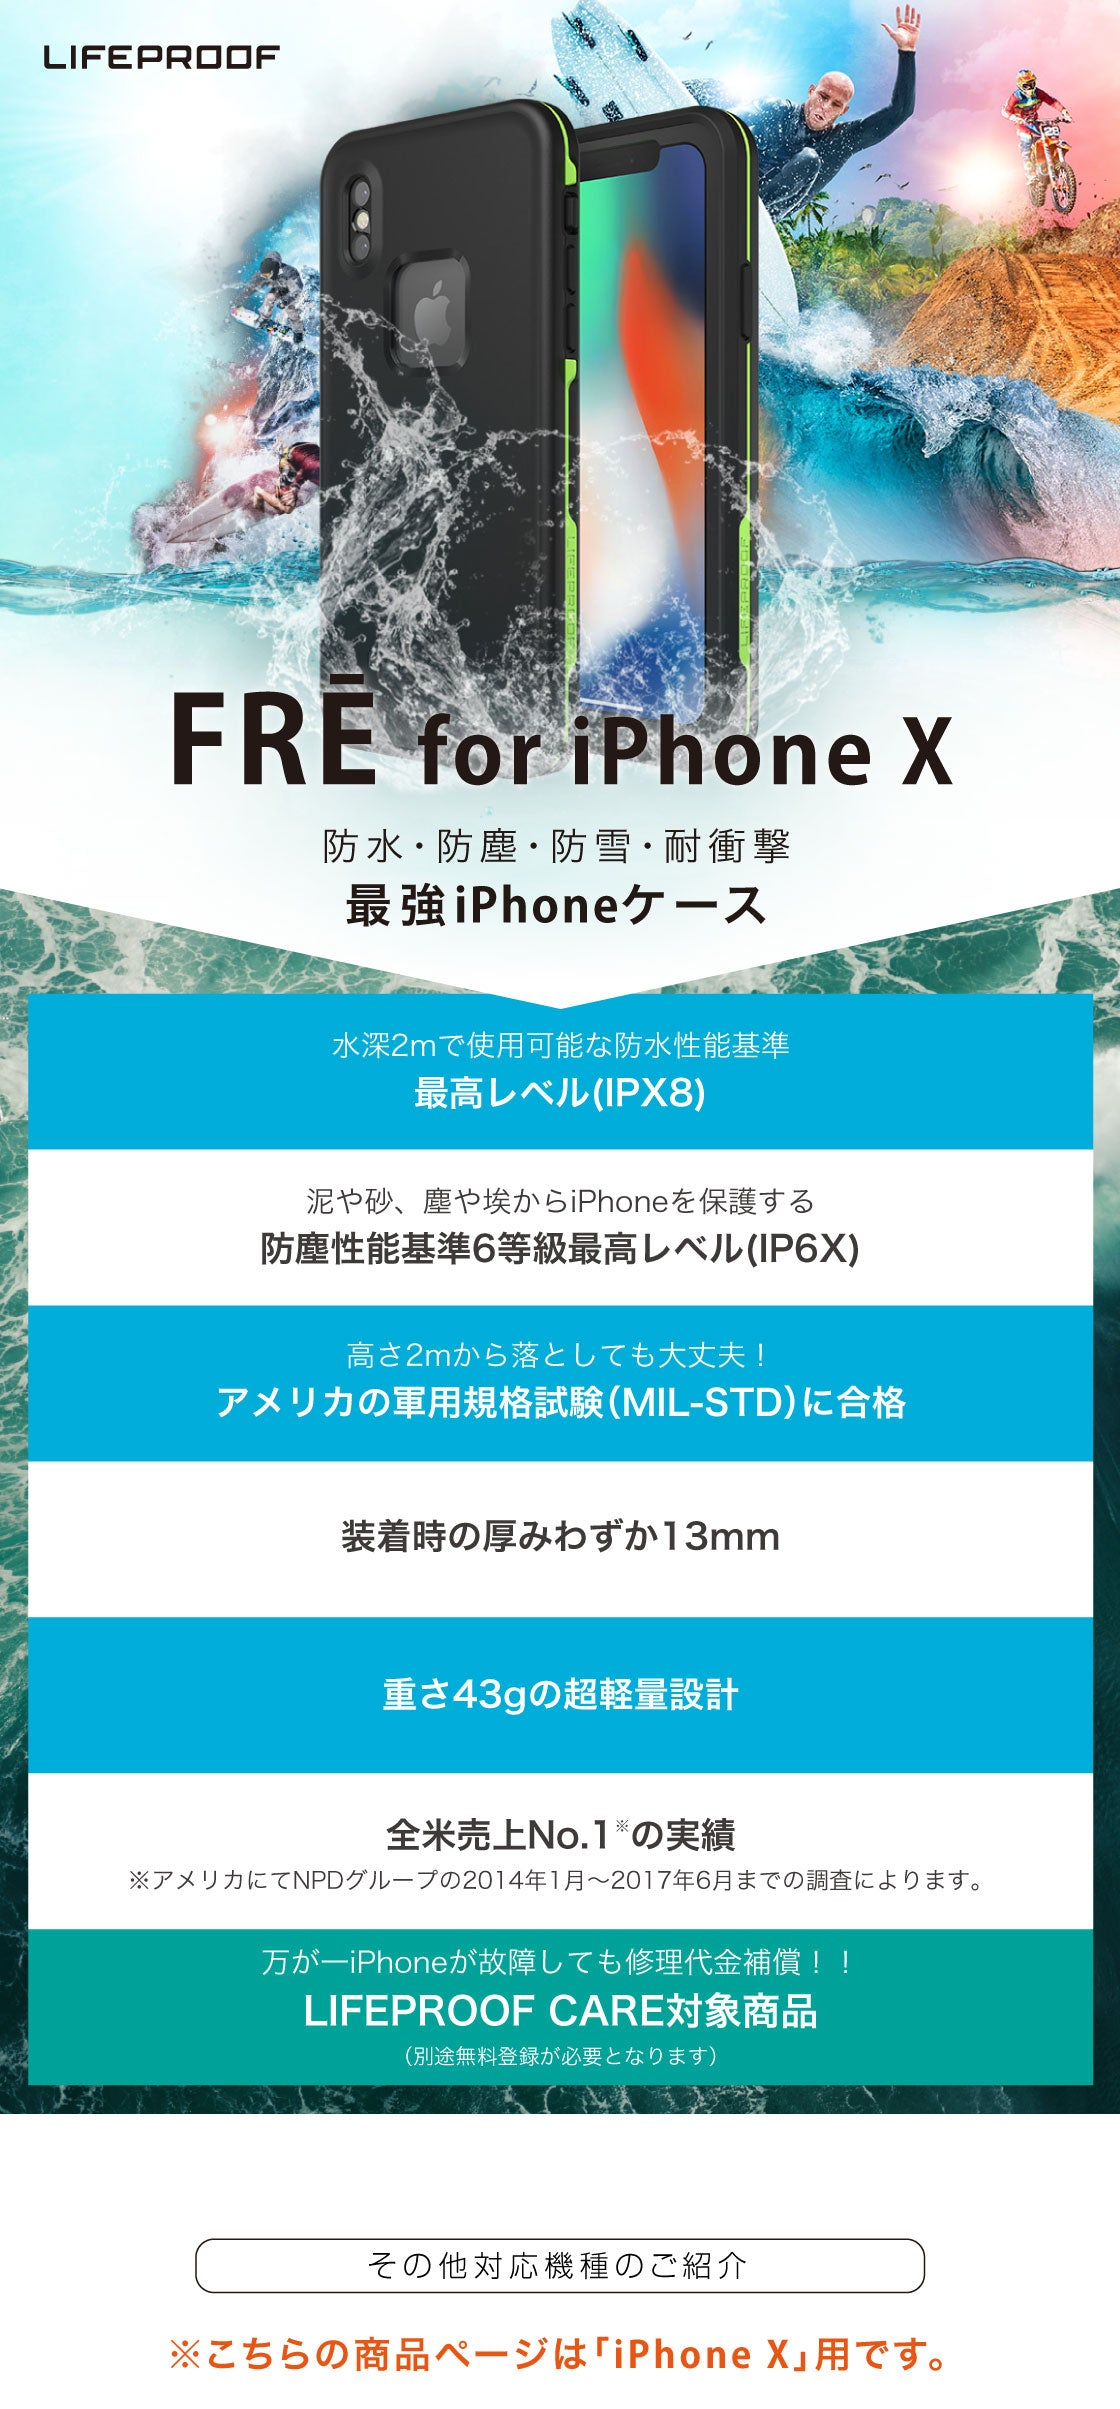 Flyer - LIFEPROOF - FRE for iPhone X